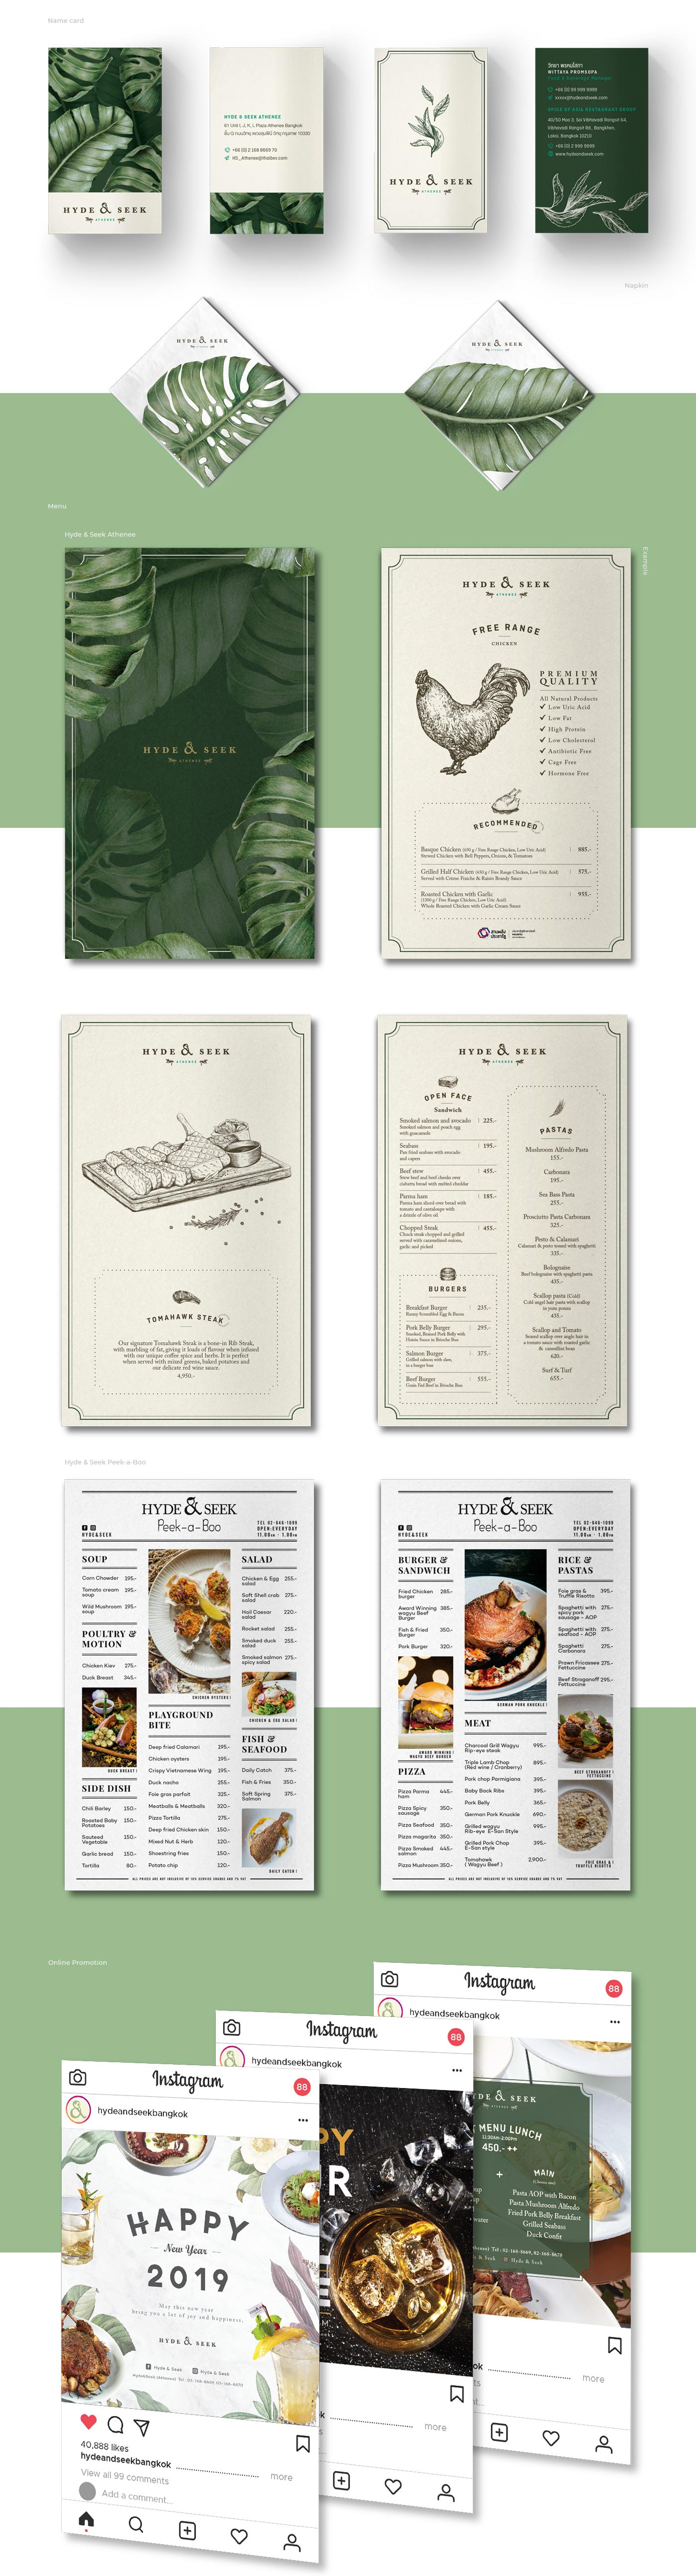 restaurant_branding_graphic_design